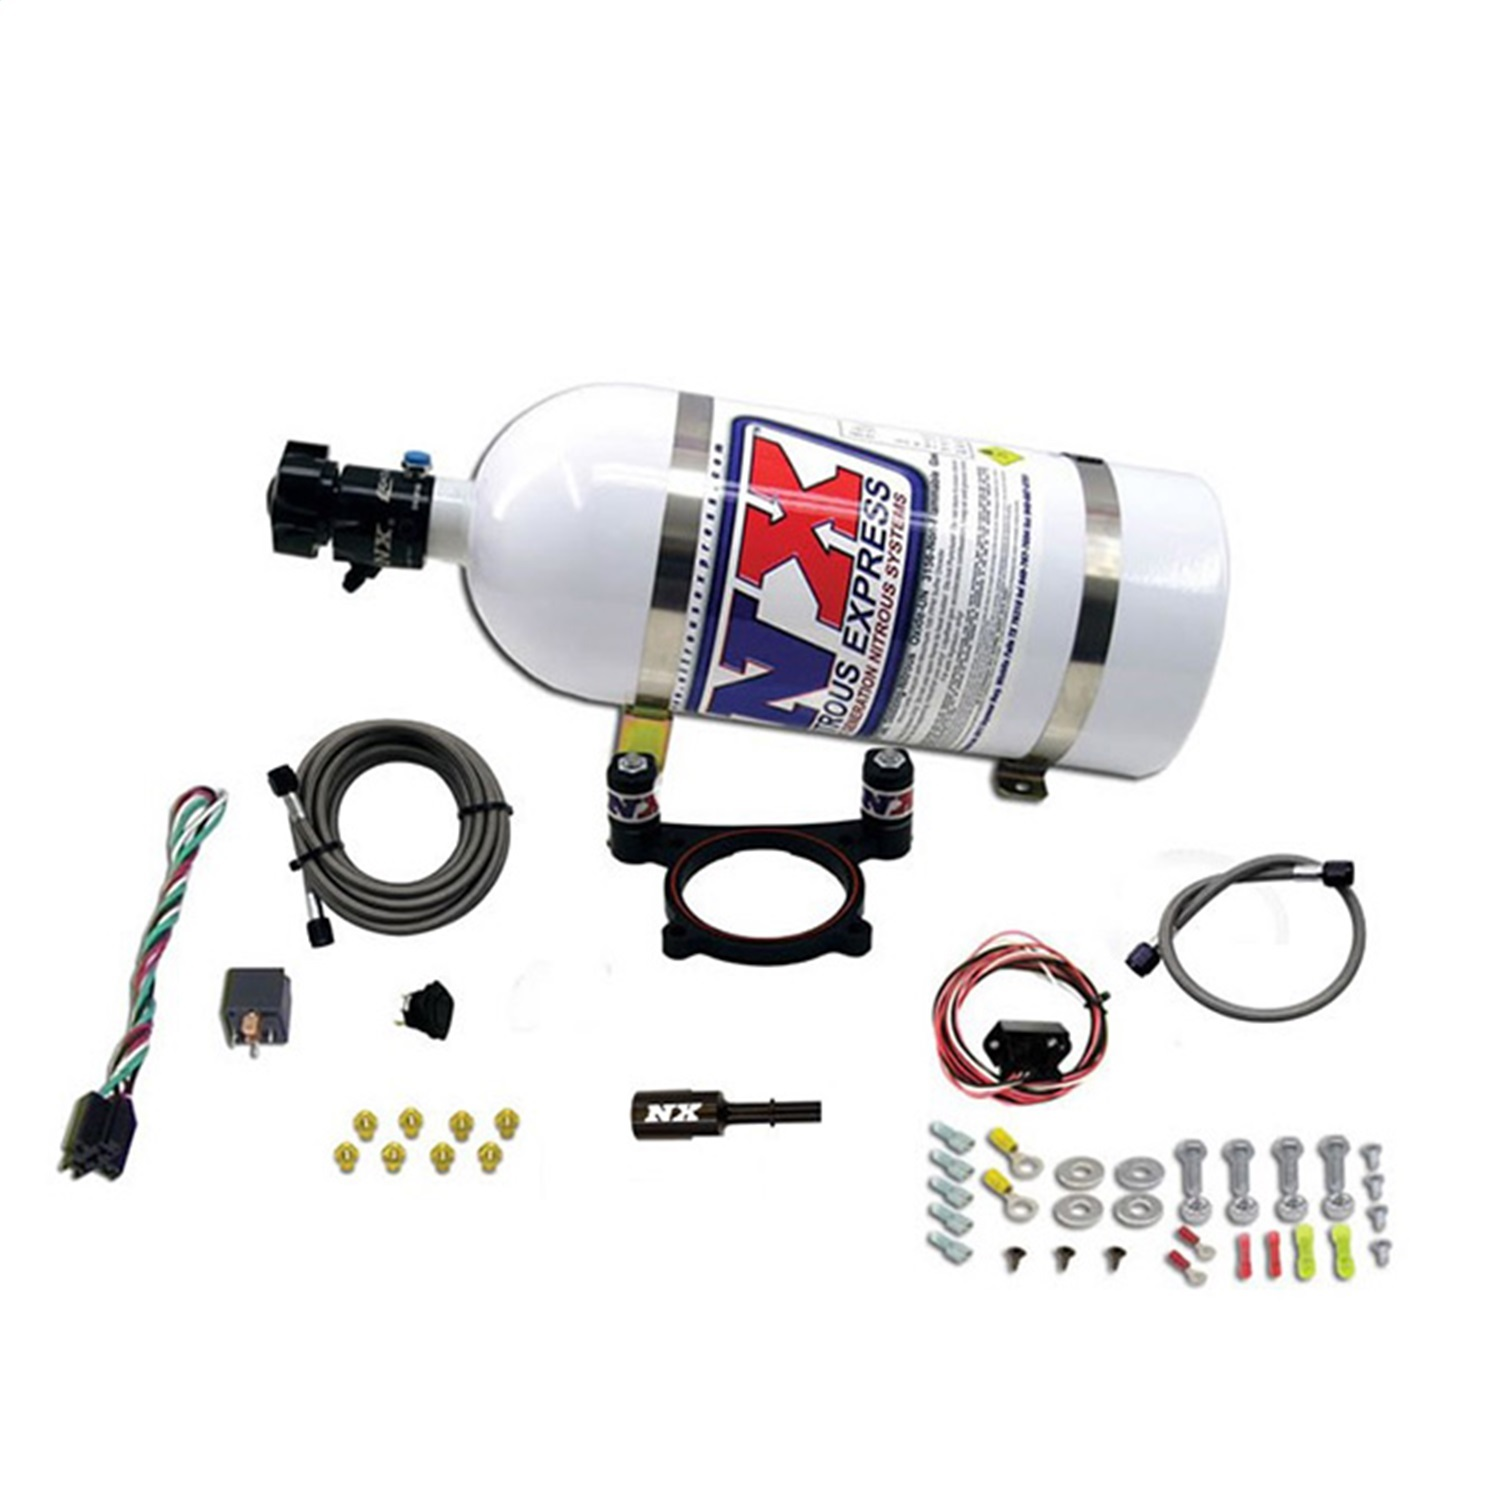 nitrous-express-20948-10-ford-coyote-plate-system-nitrous-system-fits-mustang